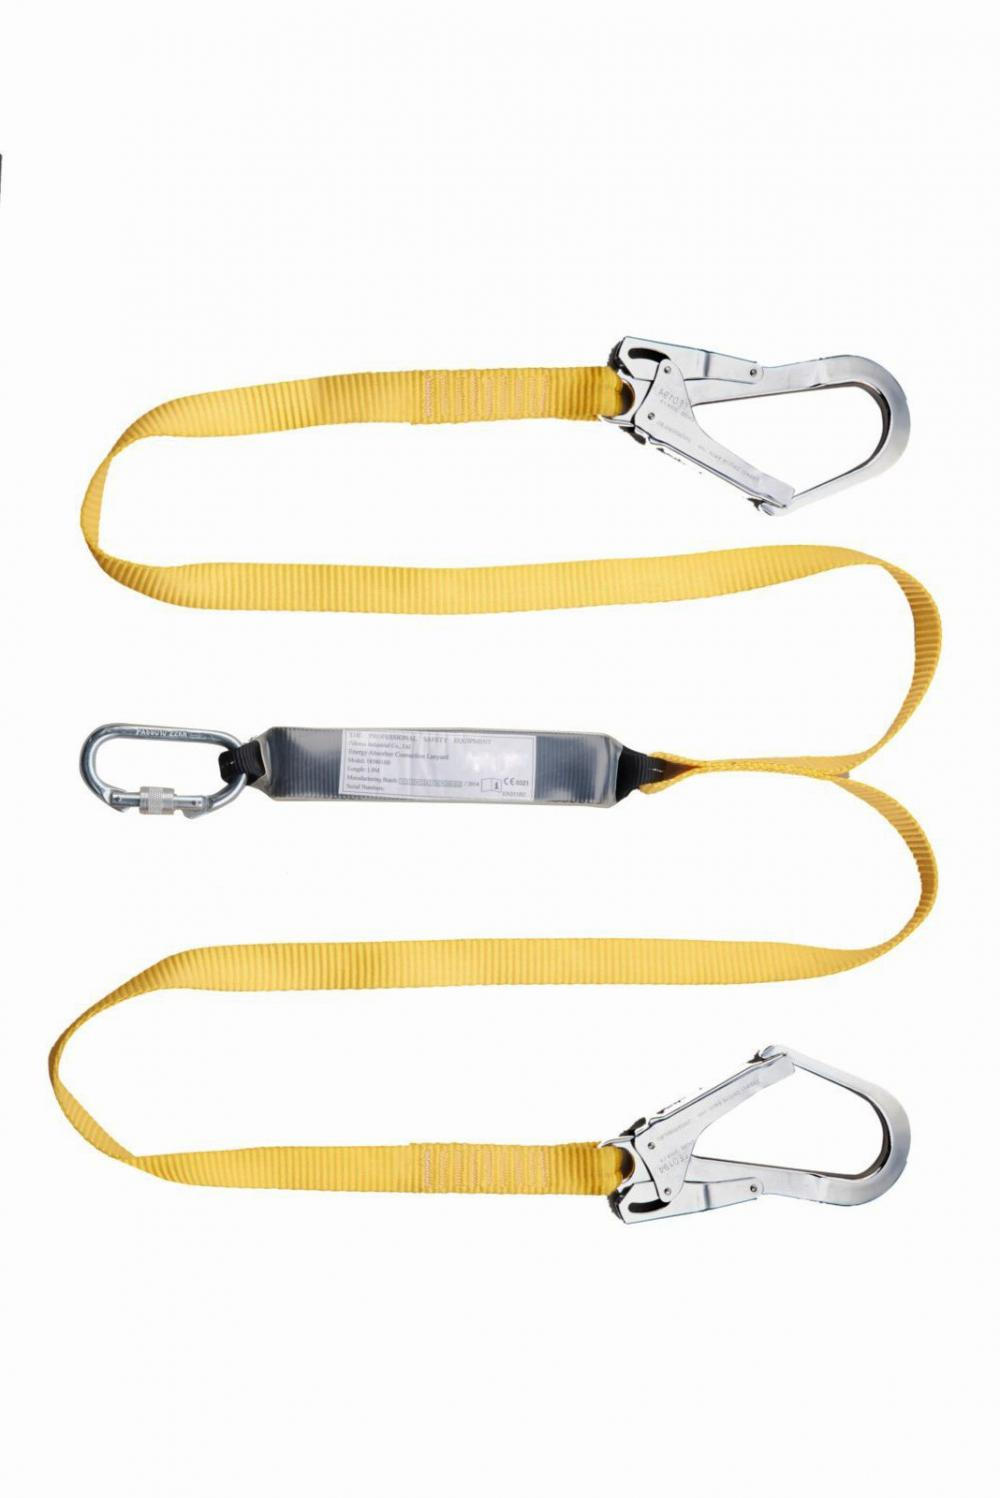 Safety Lanyard match with harness fall arrest SHL8003